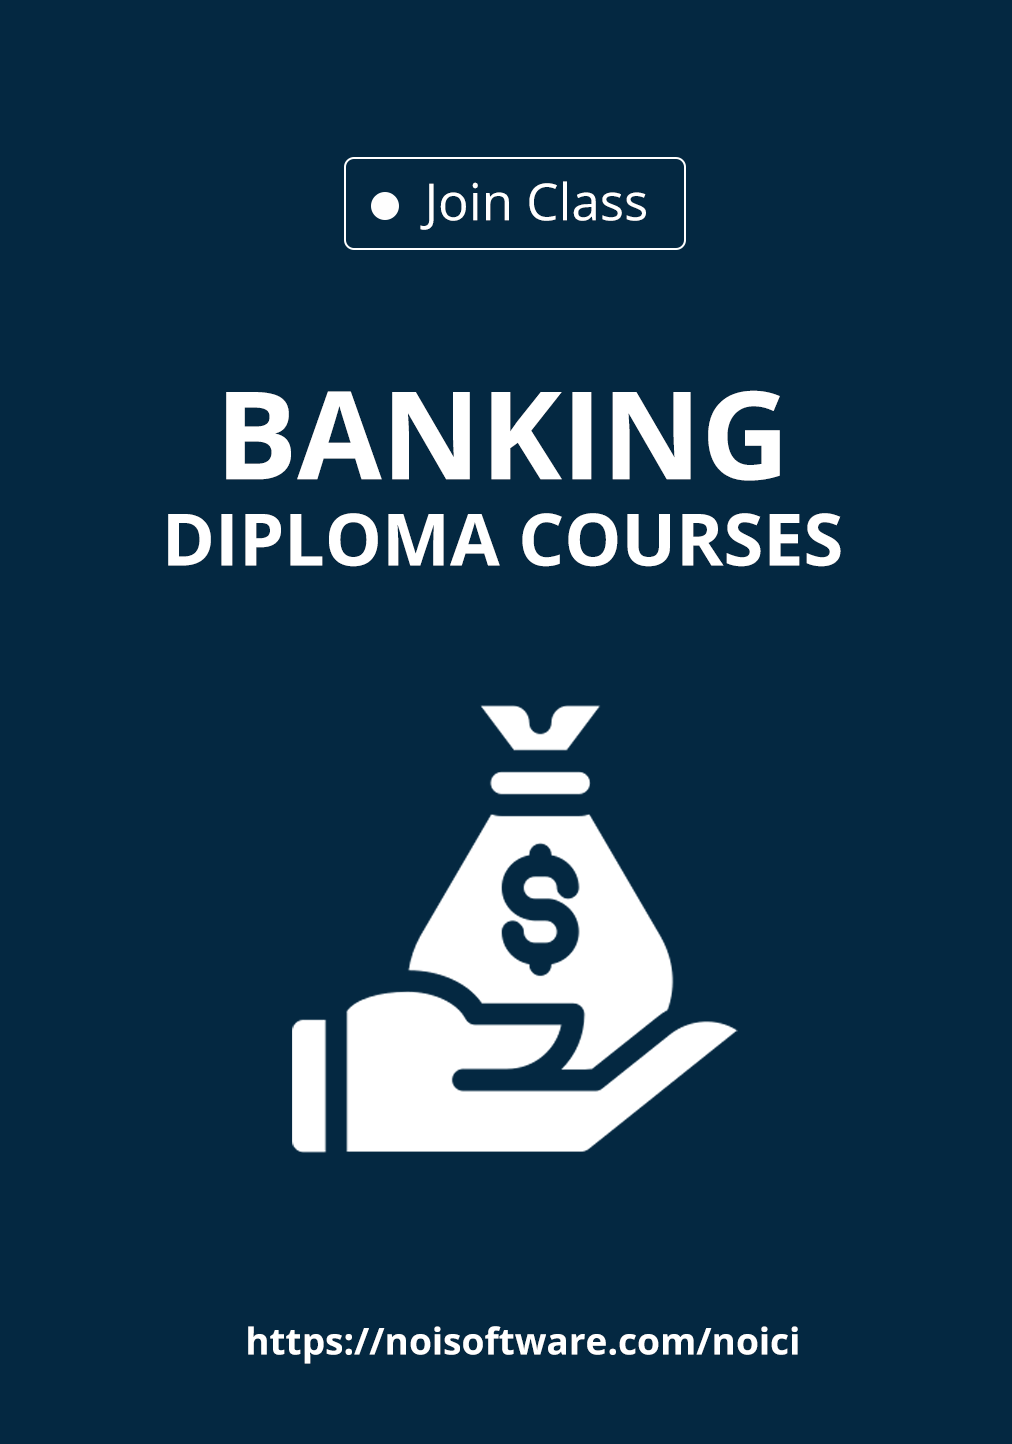 Diploma in Banking Courses